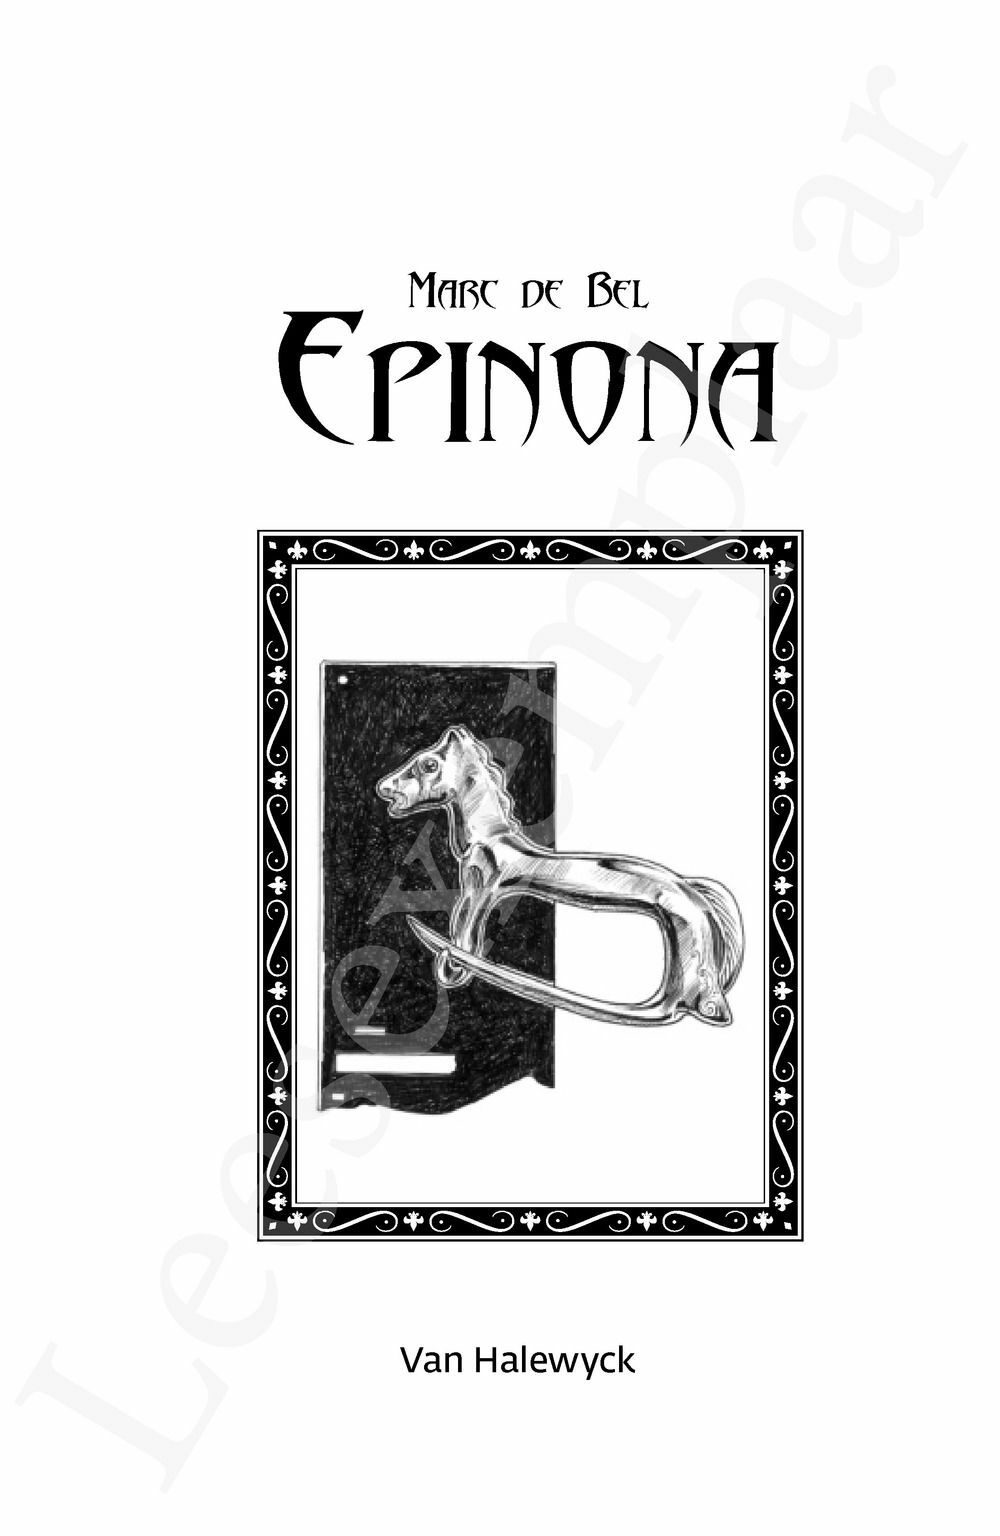 Preview: Epinona